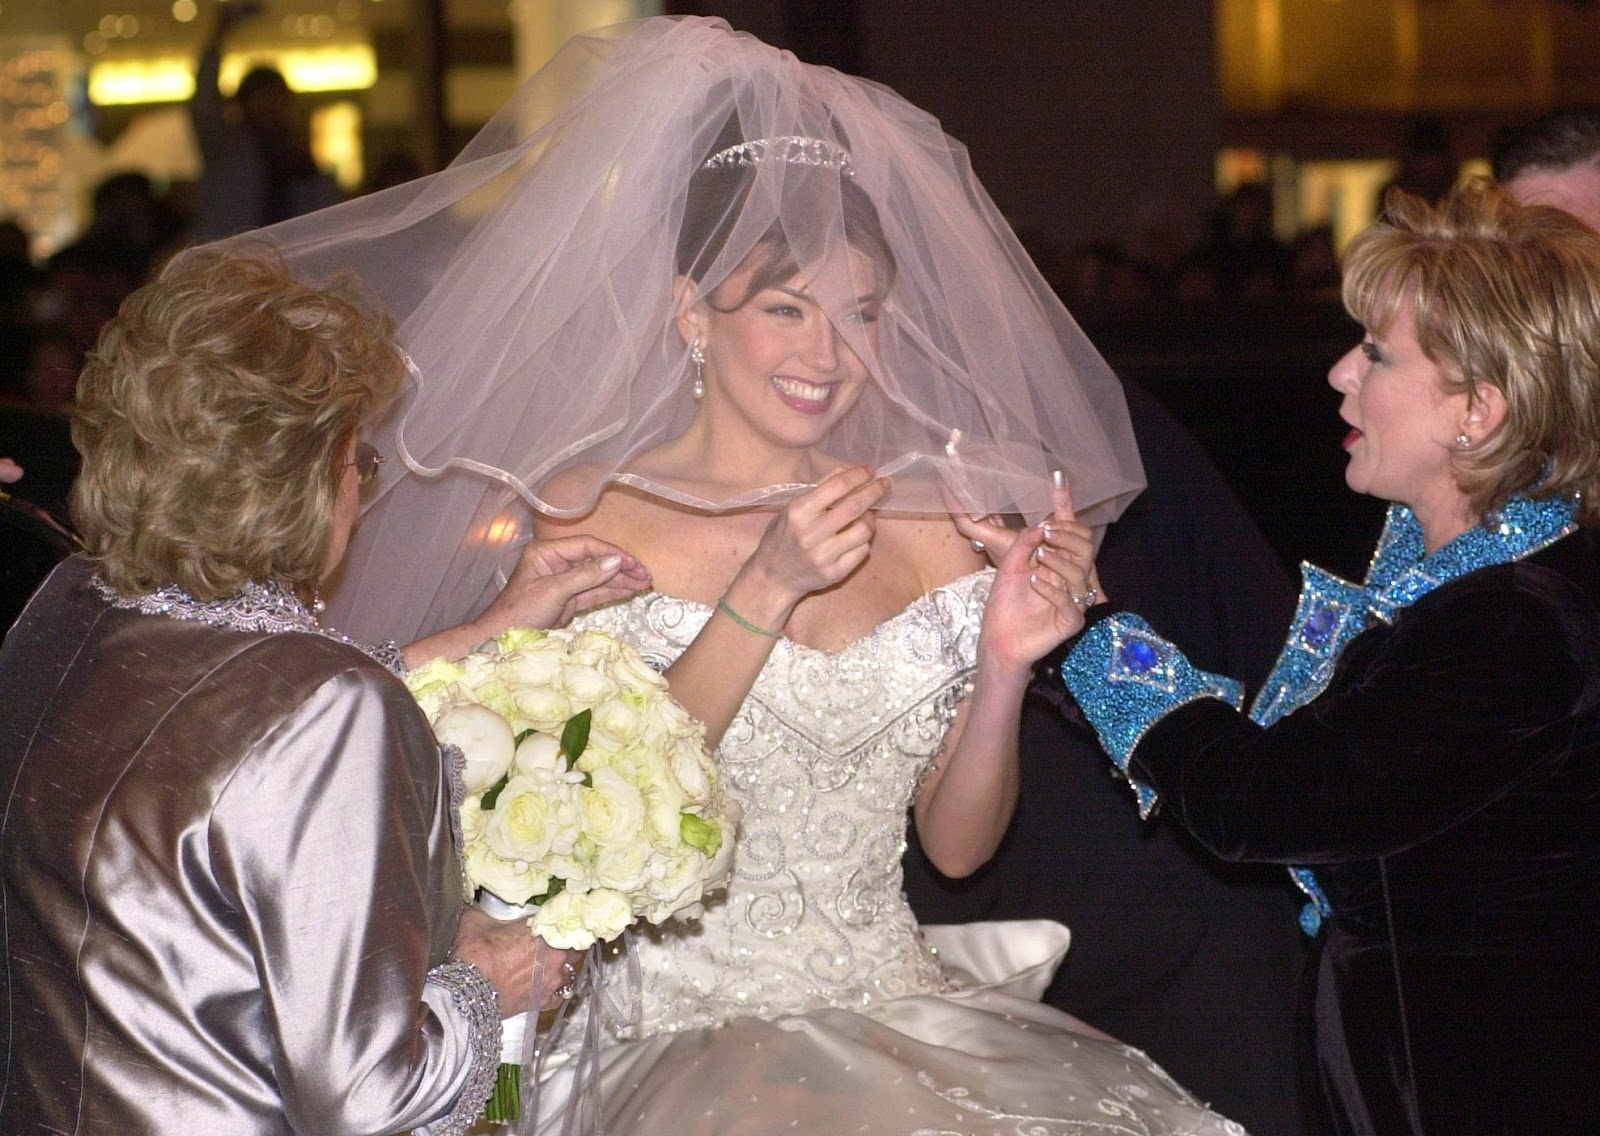 Superstar Thalía S December 2000 Nyc Wedding To Recording Impresario And Mariah Carey Ex Tommy Mottola Remains The Gold Standard For Over Top